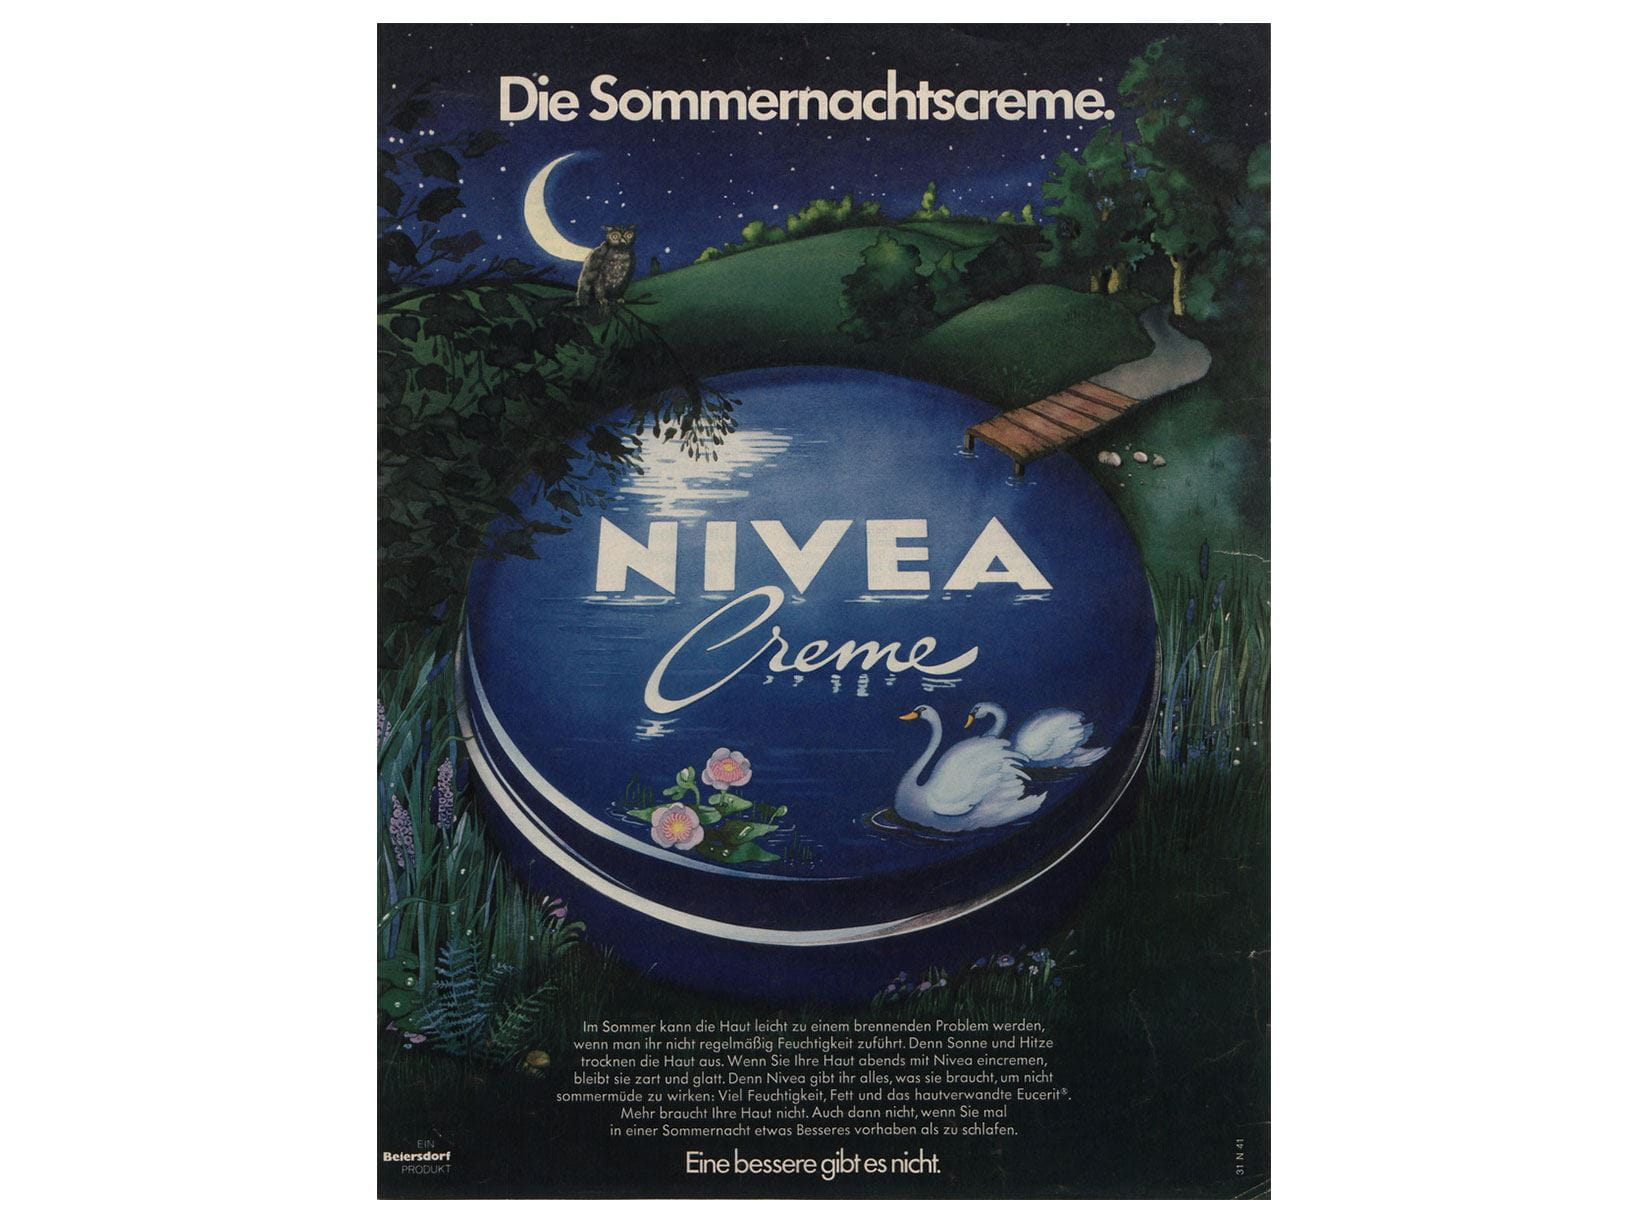 NIVEA advertisement from 1974: The summer night cream